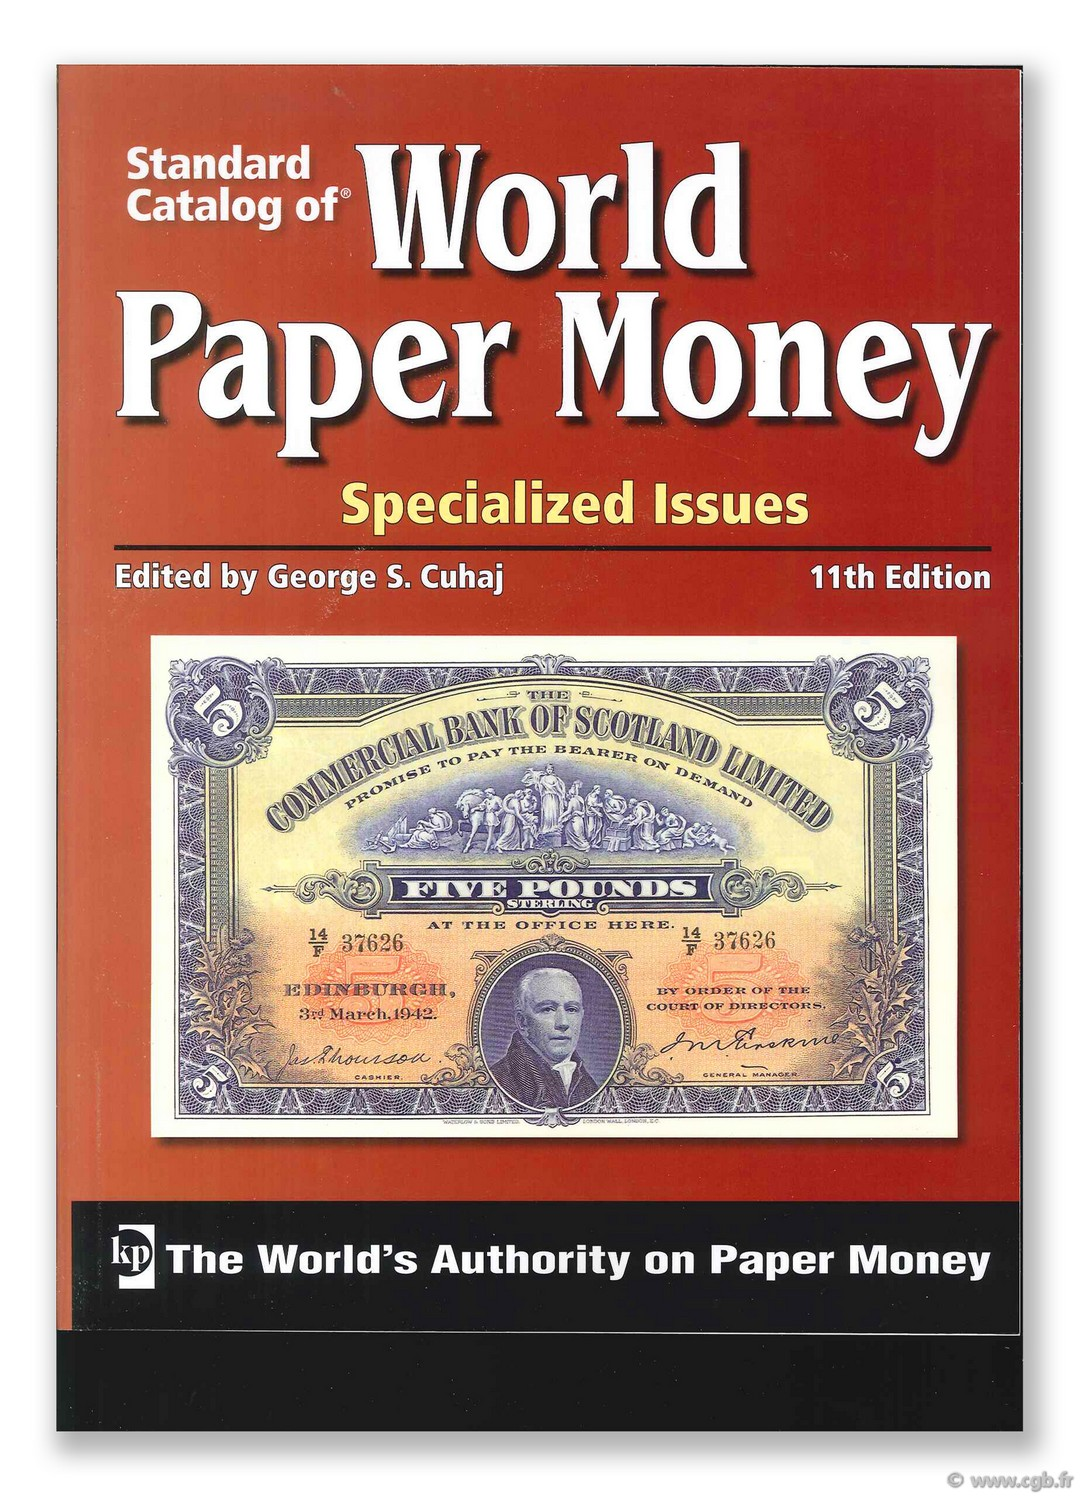 World paper money Vol.I specialized issues, 11th edition PICK Albert